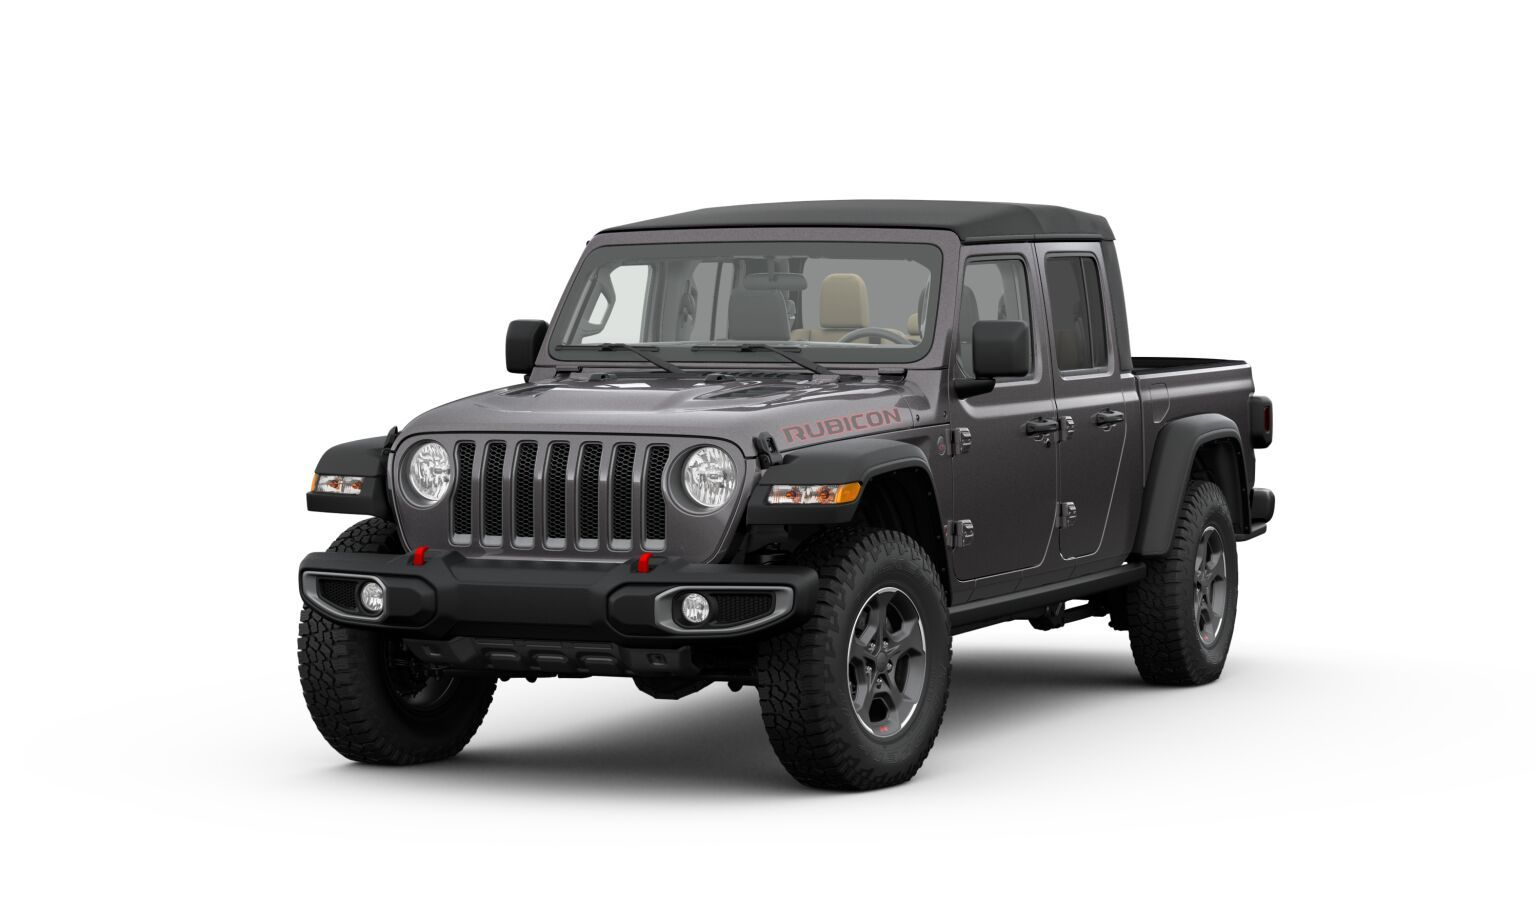 all-new 2020 jeep gladiator - it's finally here | jeep